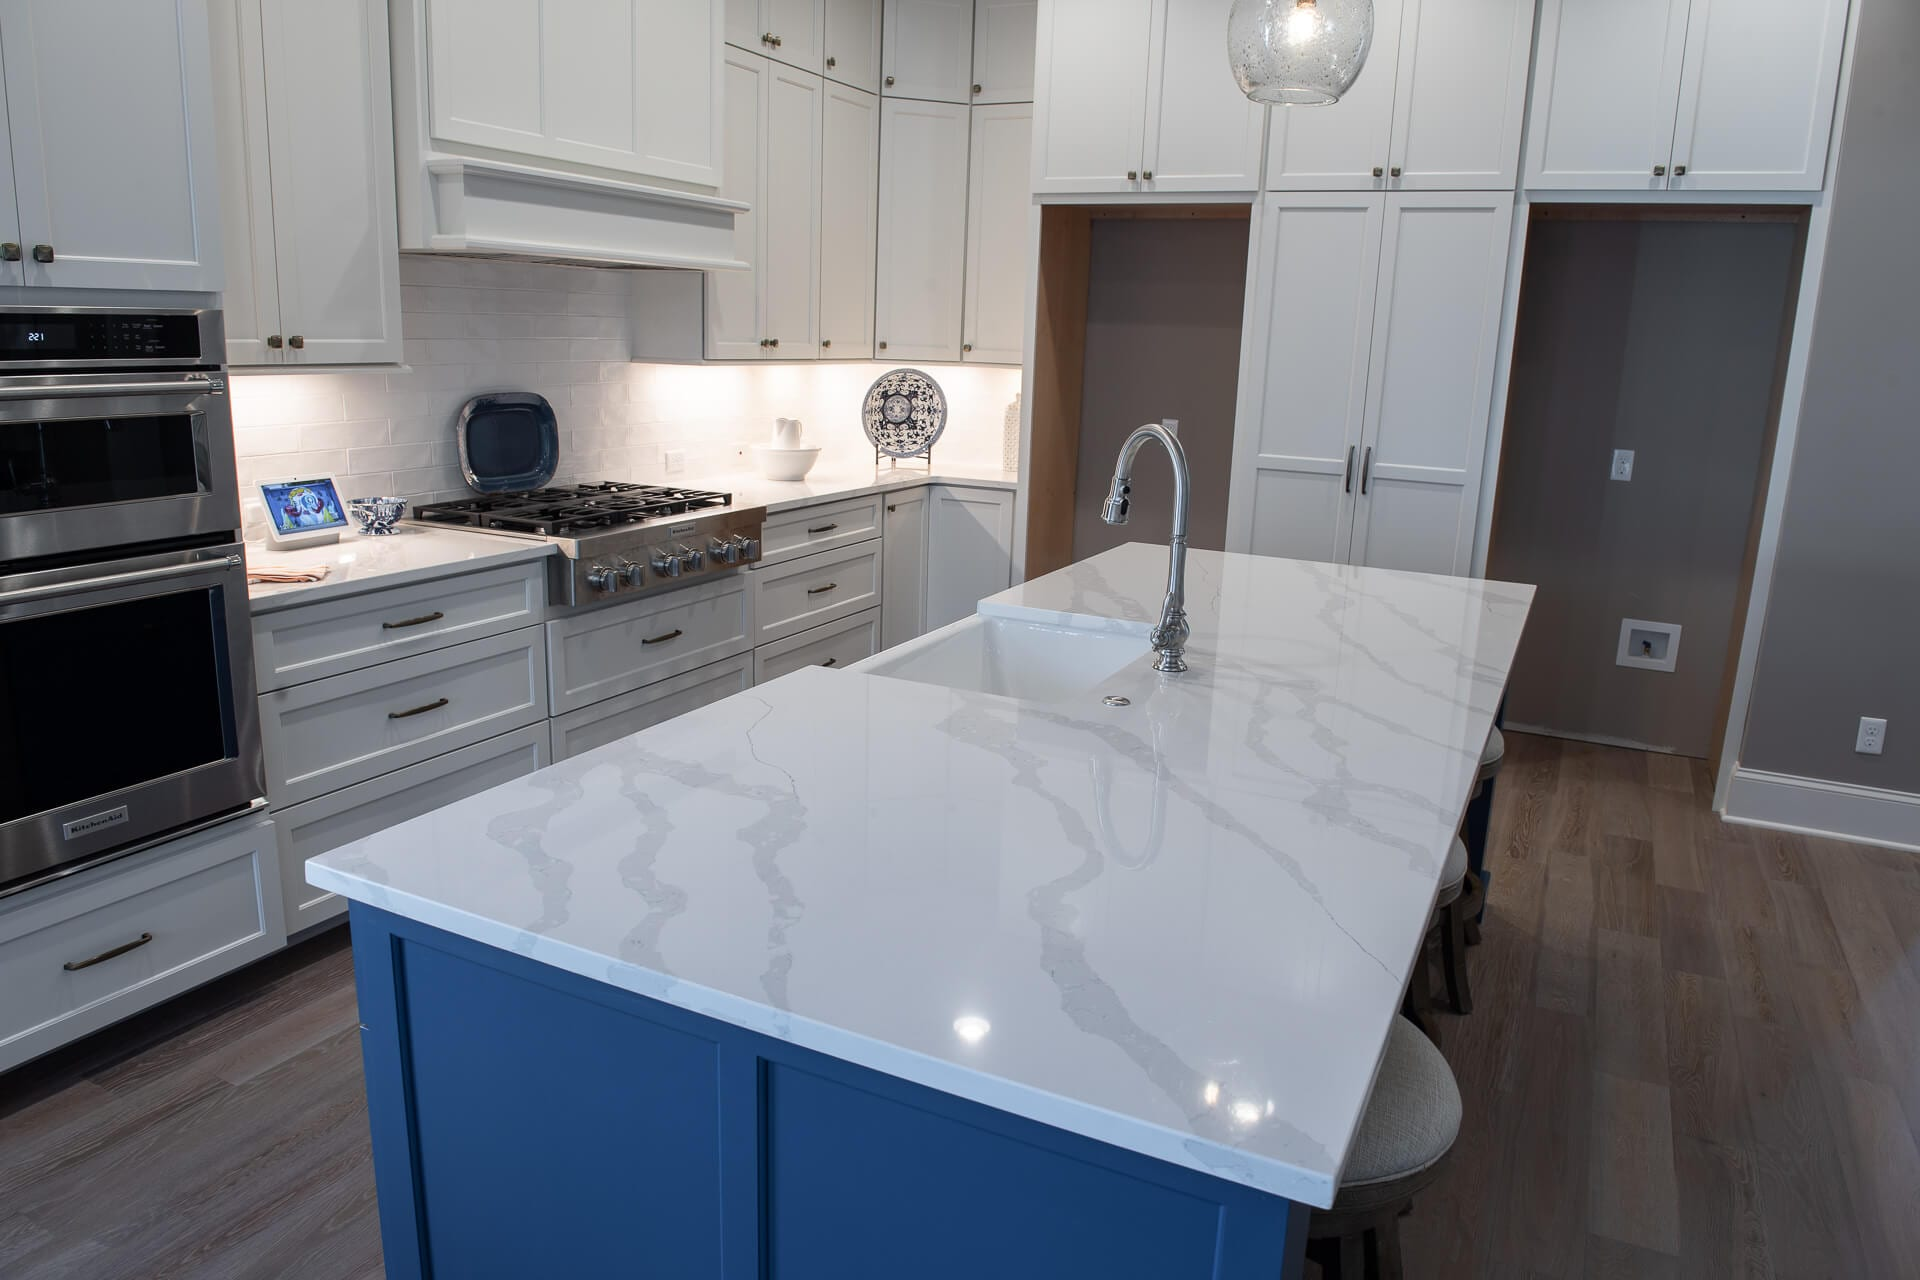 Gallery 8 of a Kitchen Remodel by Magnolia Countertops. A Countertop fabricator of Granite Countertops, Marble Countertops, and Quartz Countertops in Cookeville and Crossville TN.